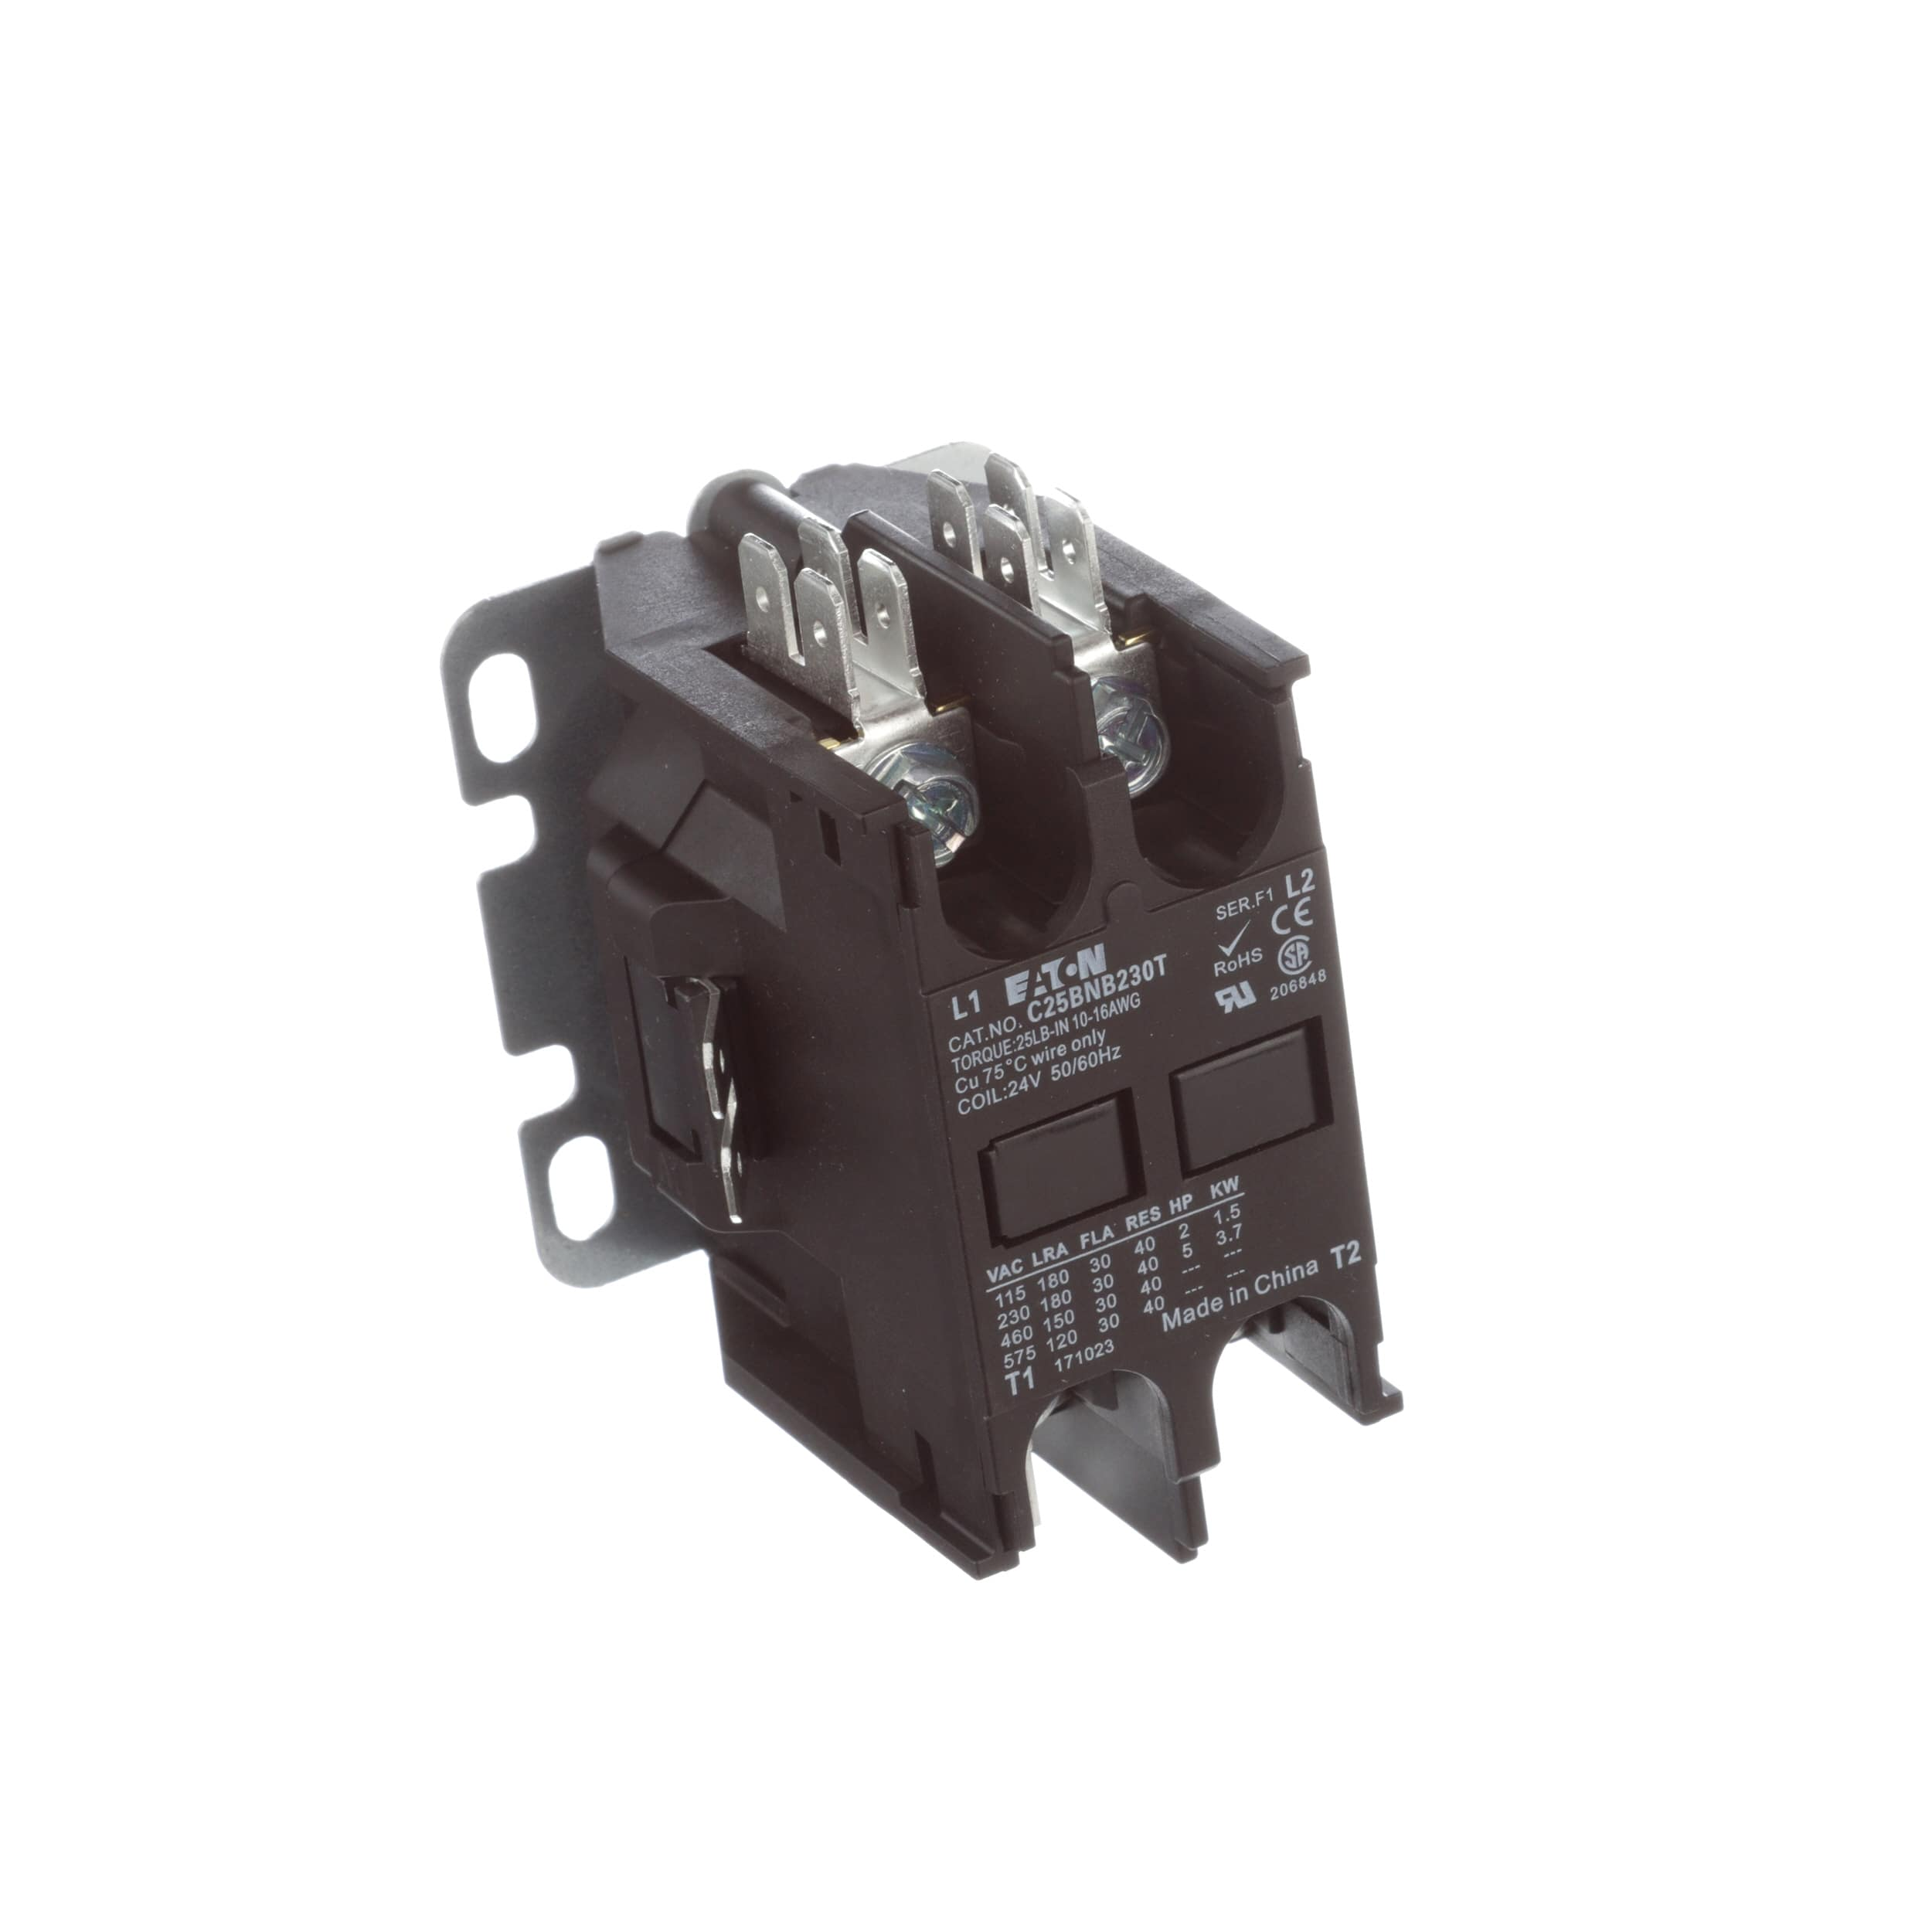 Eaton Cutler Hammer C25bnb230t Contactor Dp 2 Pole 30a Wiring Ac 2pole 24vac Coil Allied Electronics Automation